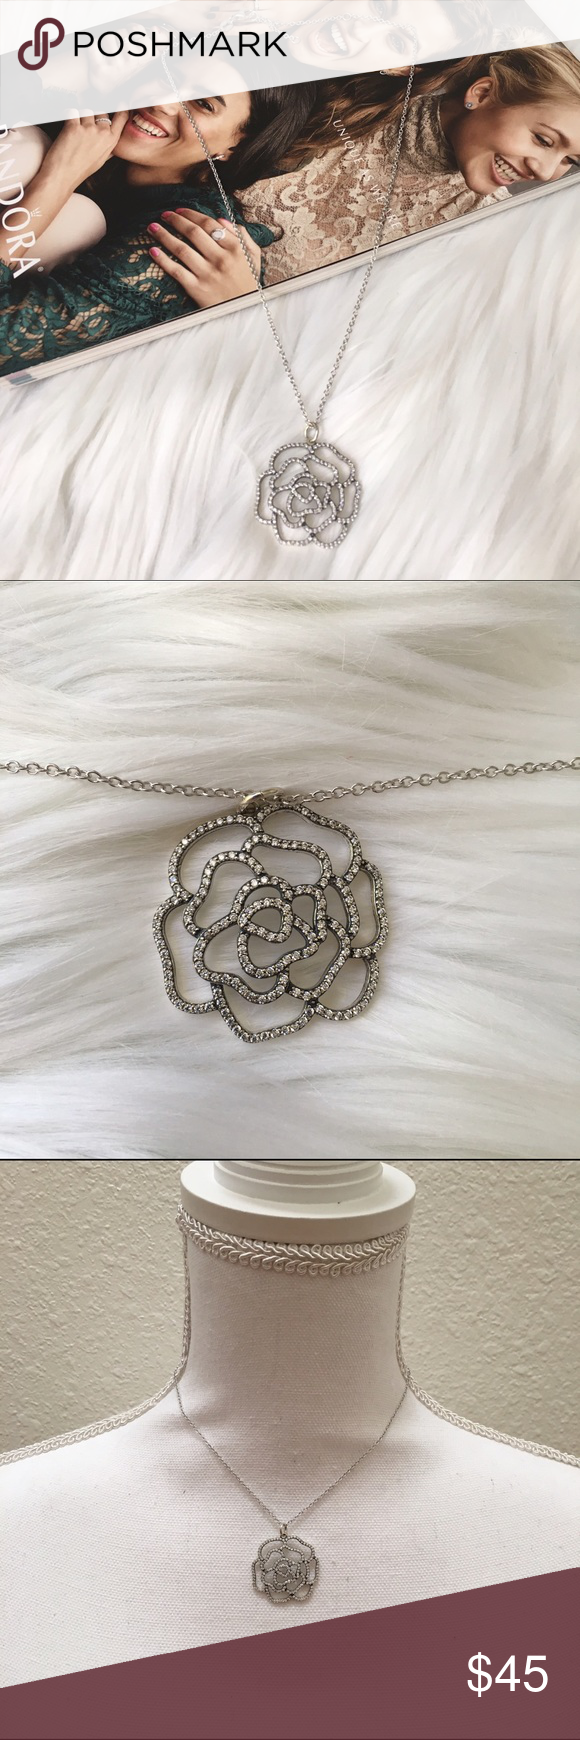 """Shimmering Rose Necklace. Genuine Sterling Silver Pand0r Style Shimmering Rose Necklace. Pendant and Chain are both stamped S925. Beautiful. Flower pendant is about 1""""x1"""". Chain is 14"""" with 3"""" extender.            .                        ✨n o t P A N D O R A✨ Jewelry Necklaces"""